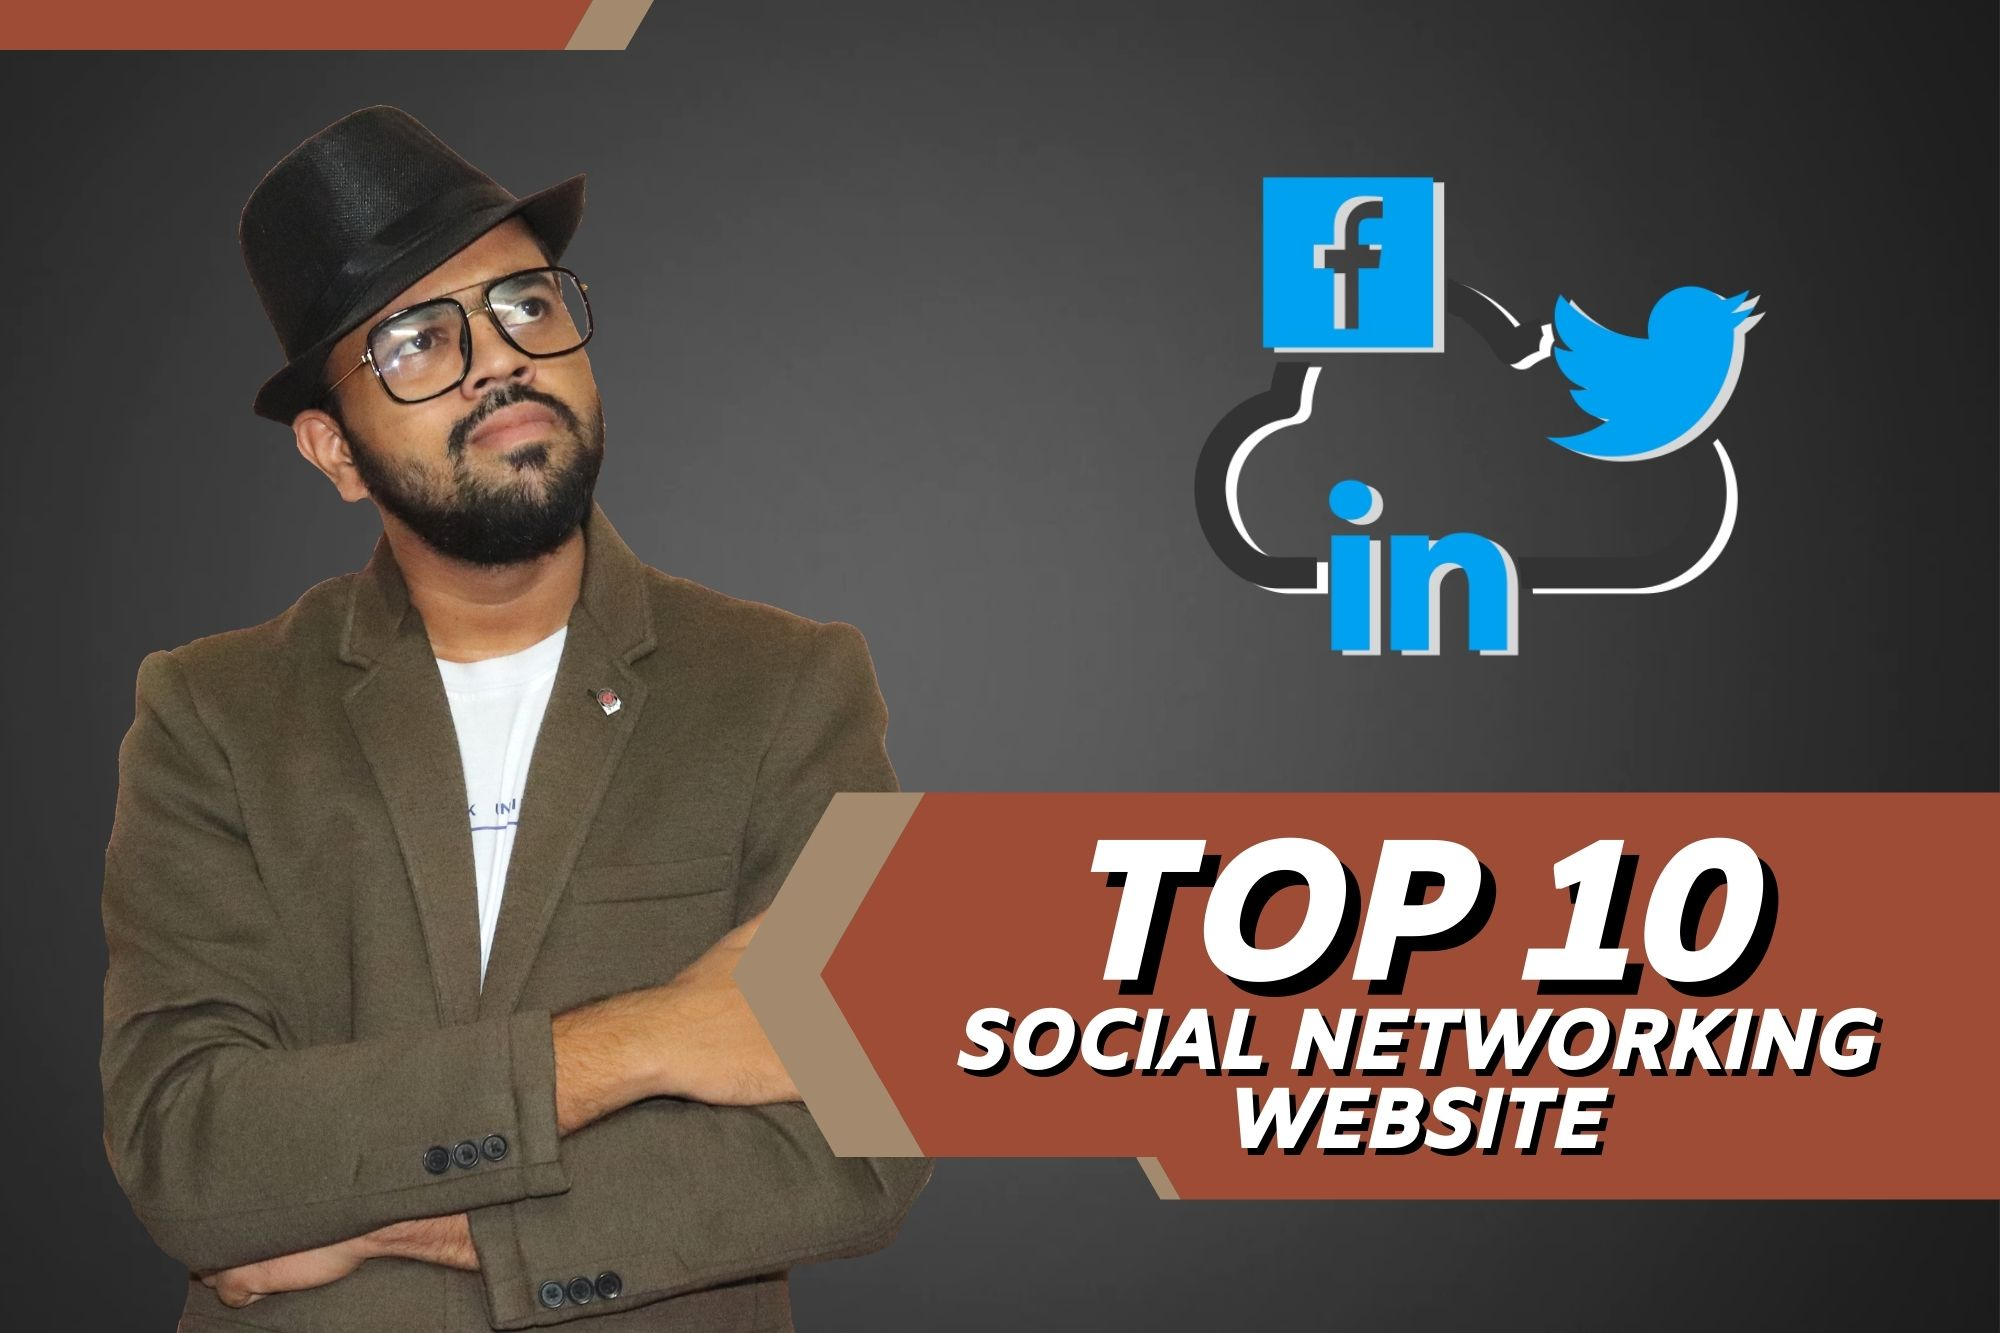 Top 10 Most Popular Social Networking Sites In India